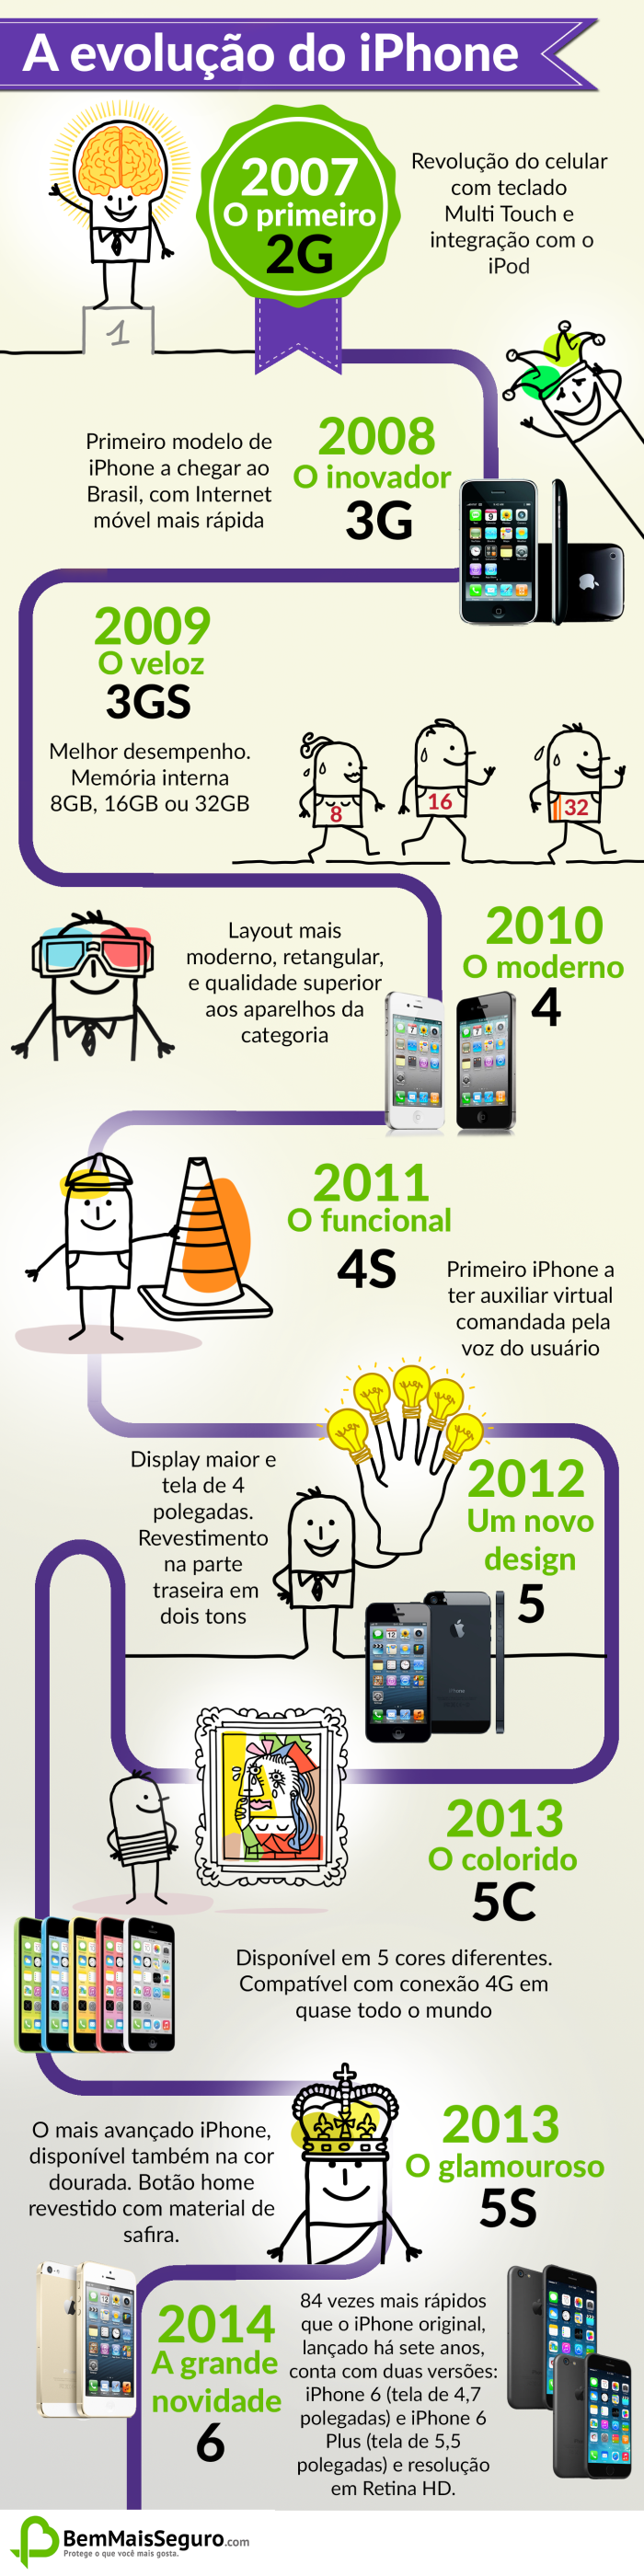 Evolução do iPhone